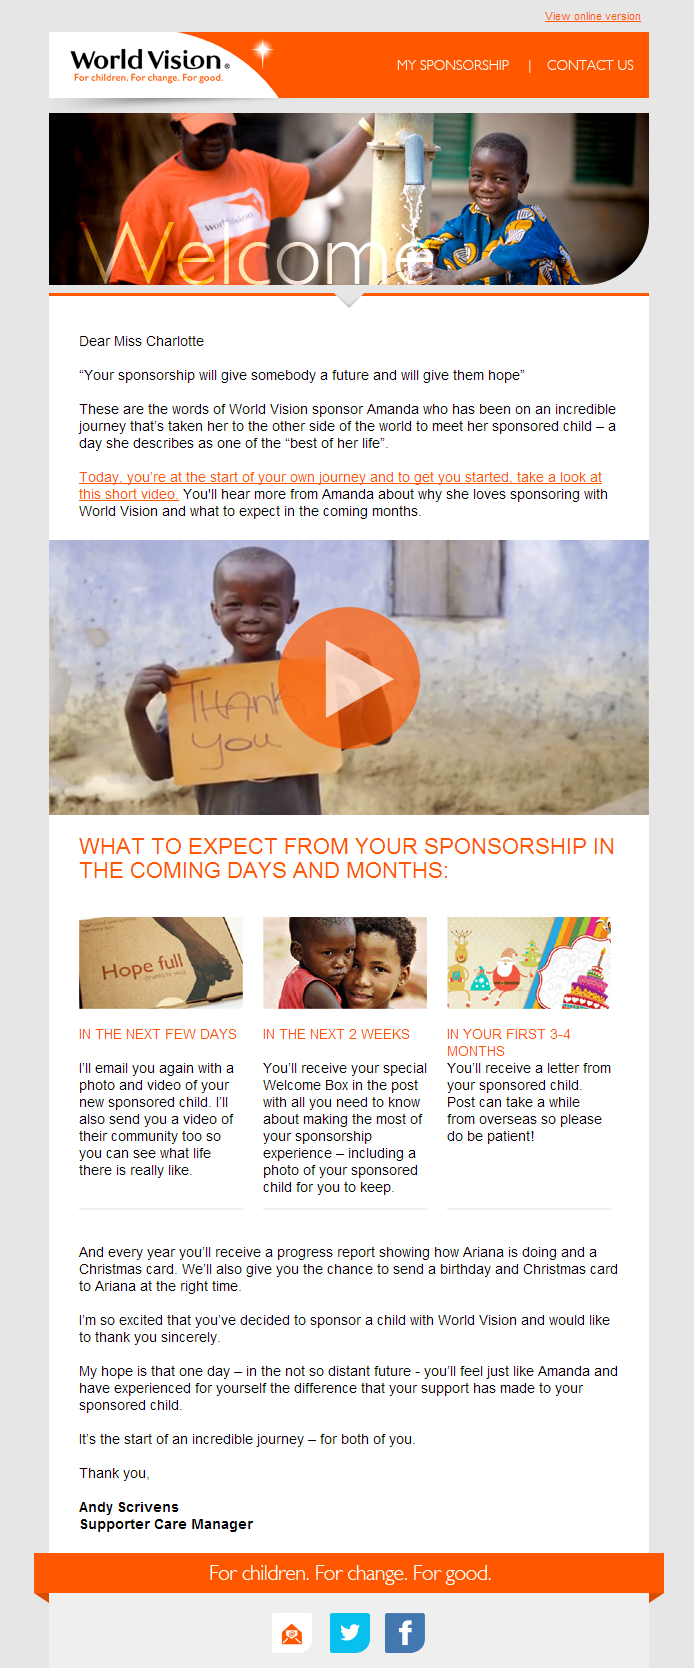 World Vision - Your sponsorship will give somebody a future